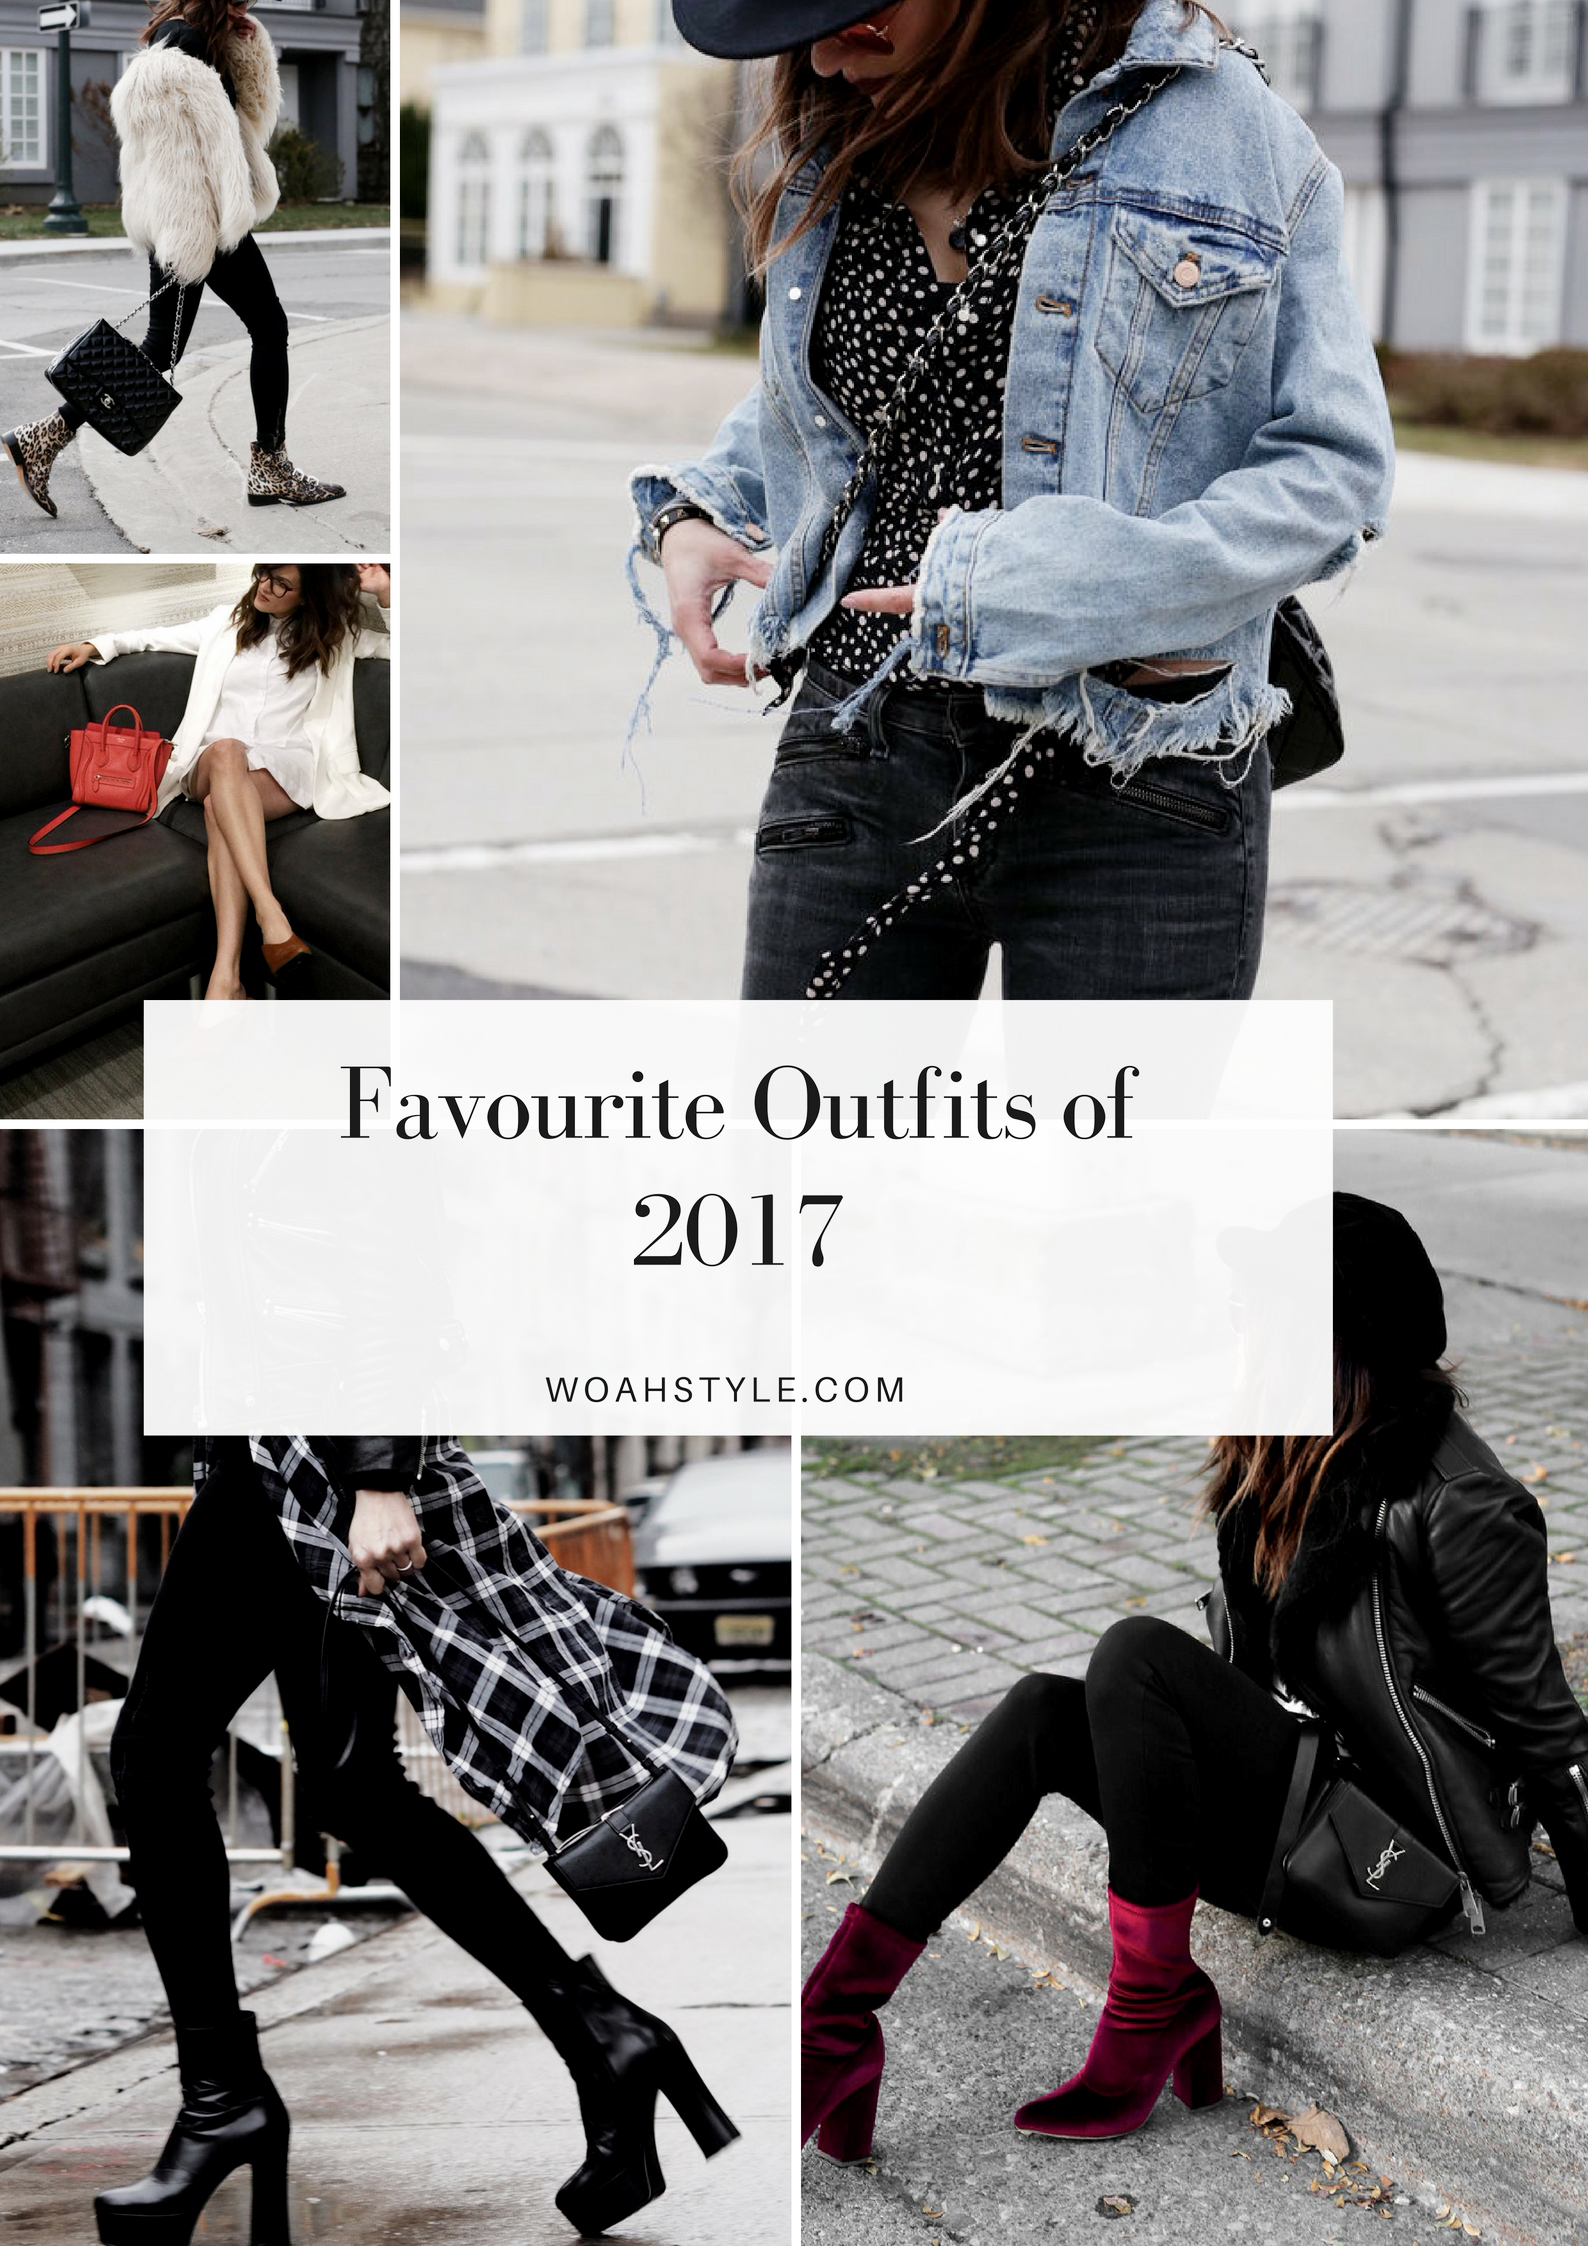 Outfits 2017 Favourite Outfits Of 2017 Woahstyle